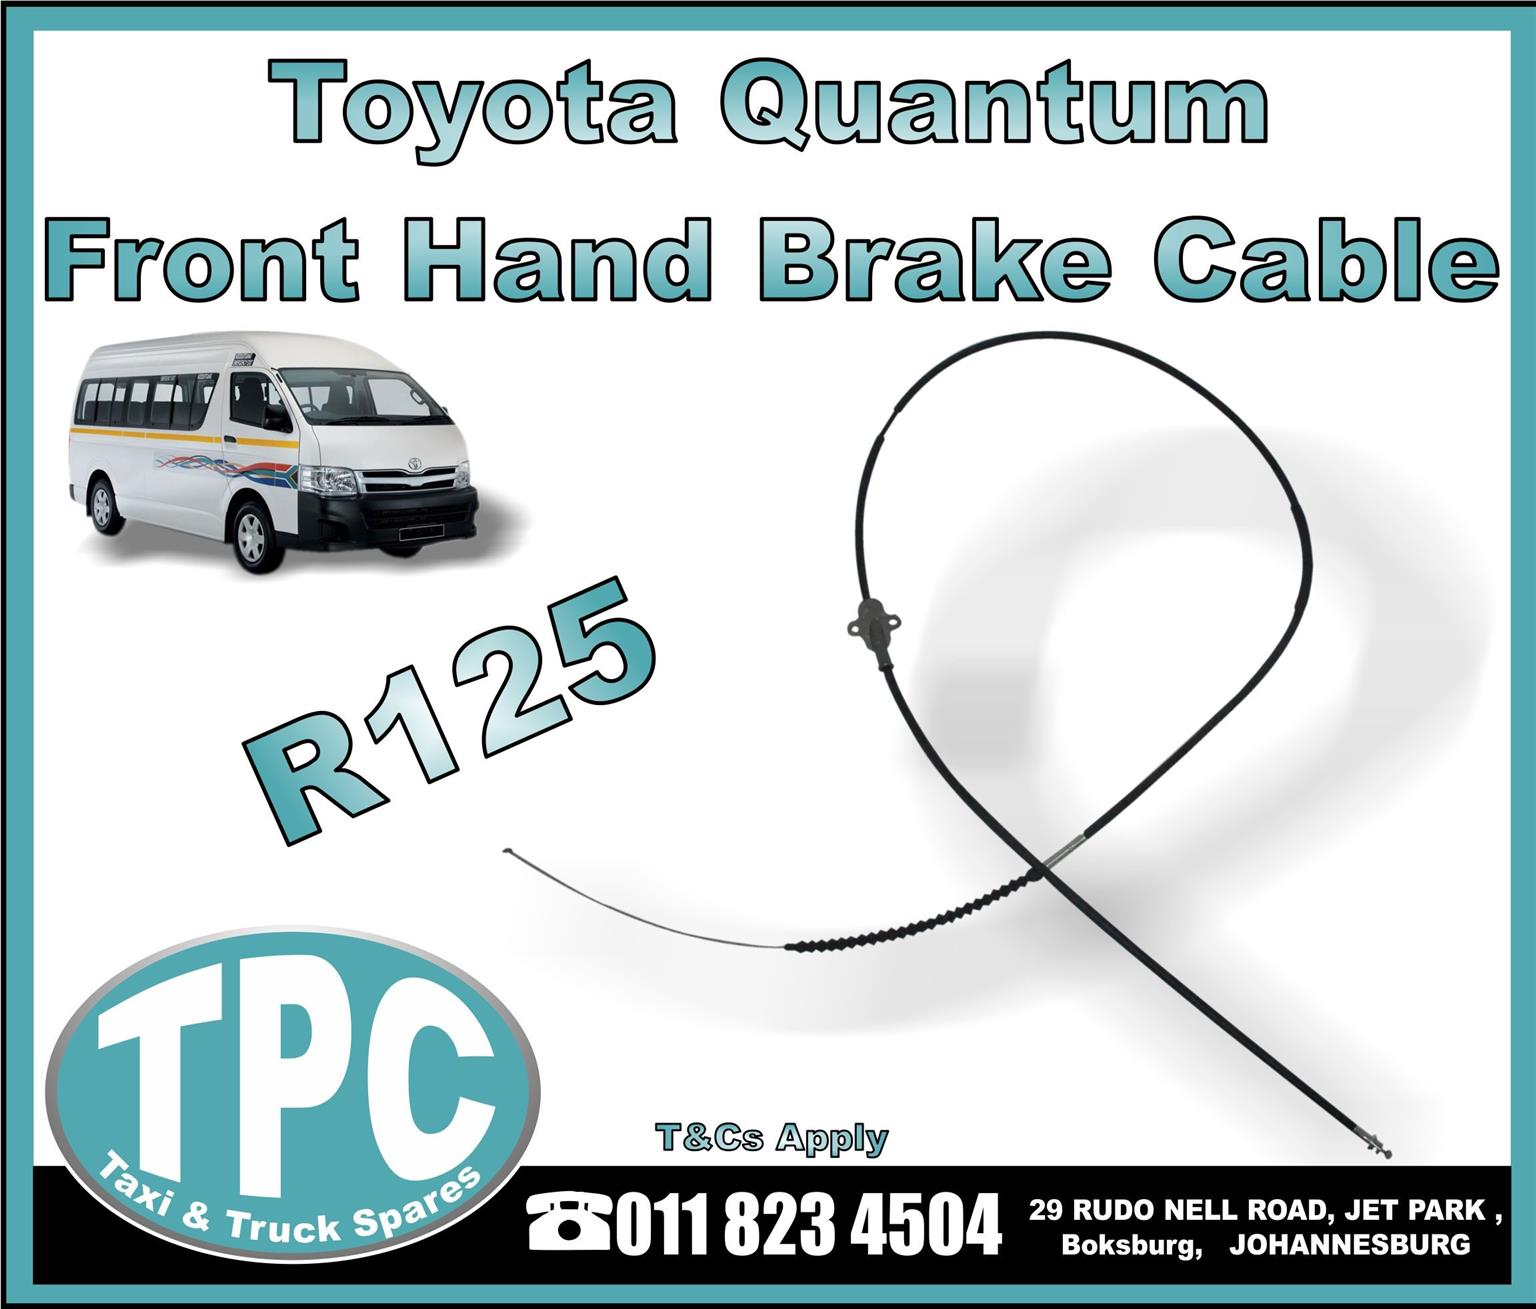 Toyota Quantum Hand Brake Cable - New And Used Replacement Taxi Parts -TPC.